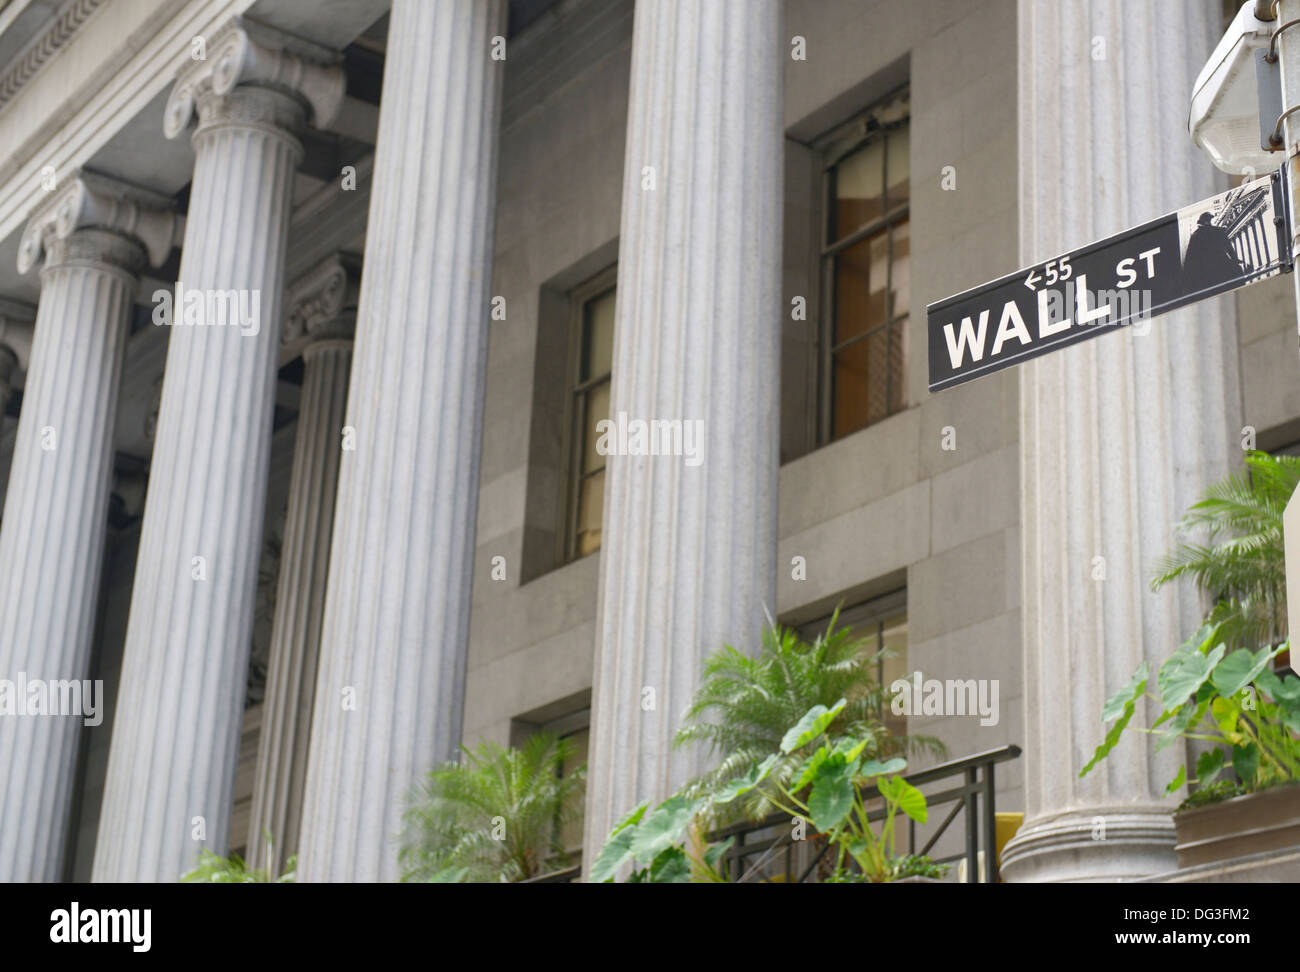 55 wall Street Photo Stock